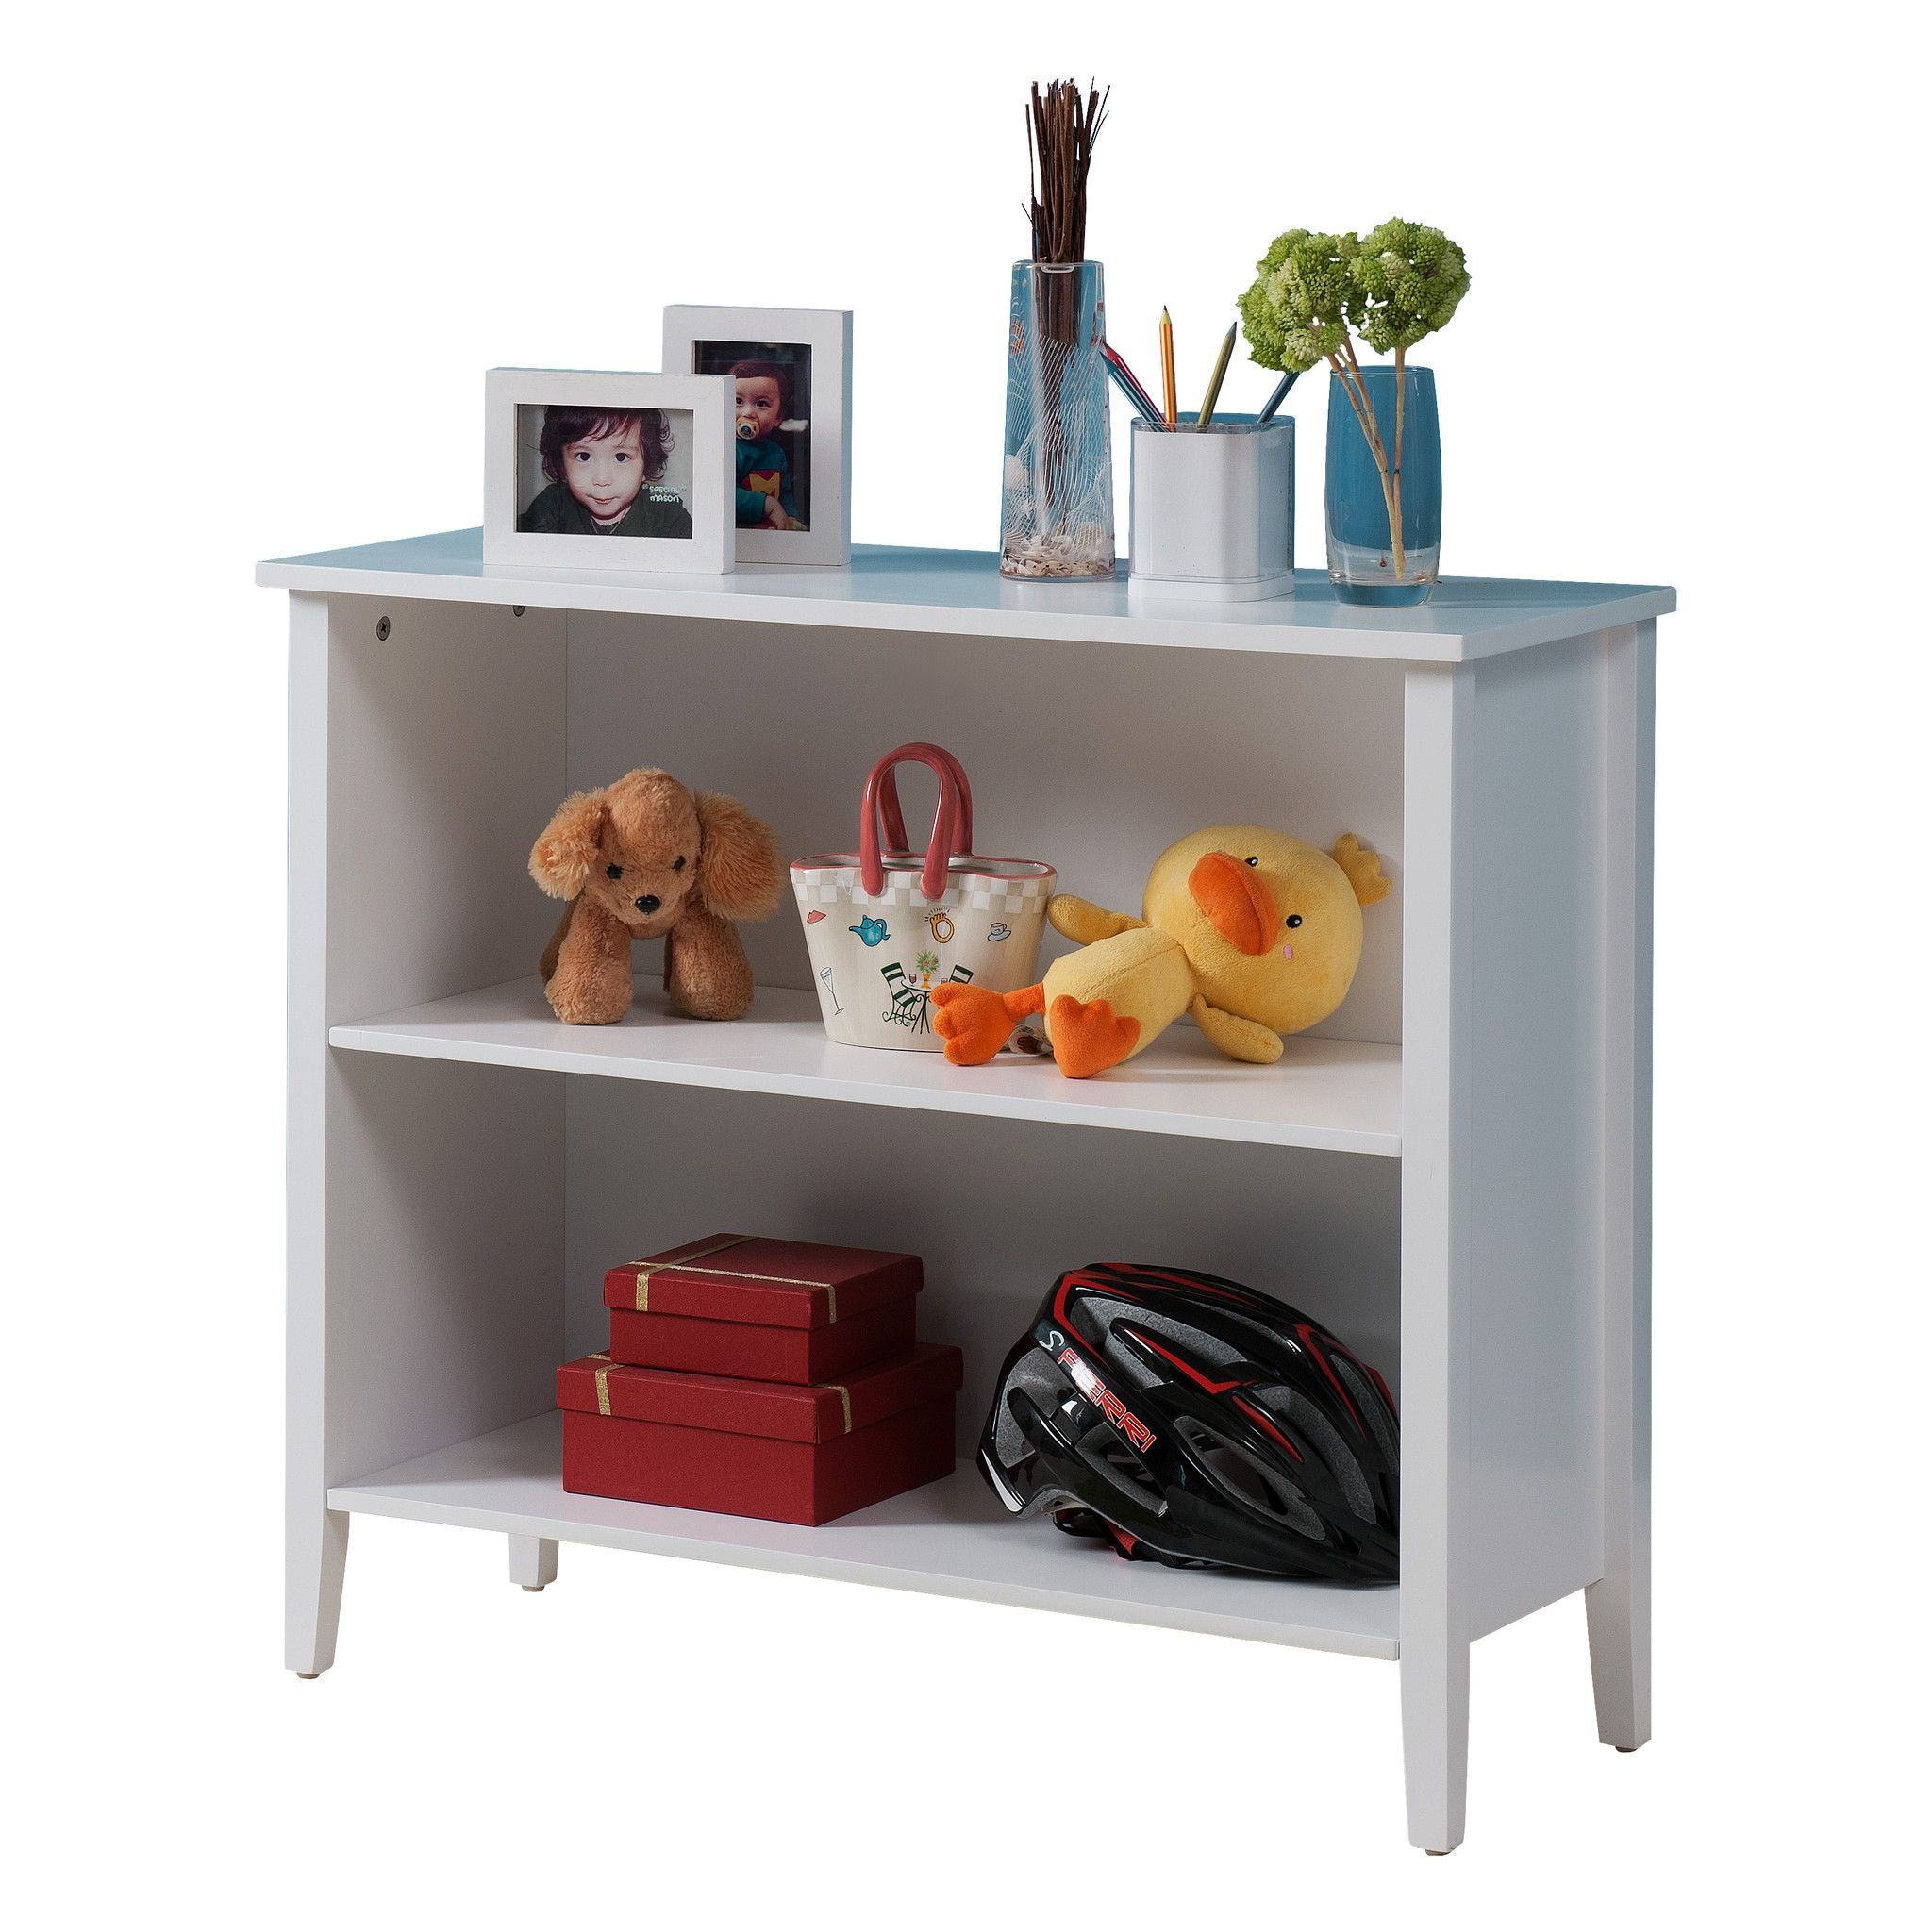 Pilaster Designs - White Finish 2-Shelf Bookcase